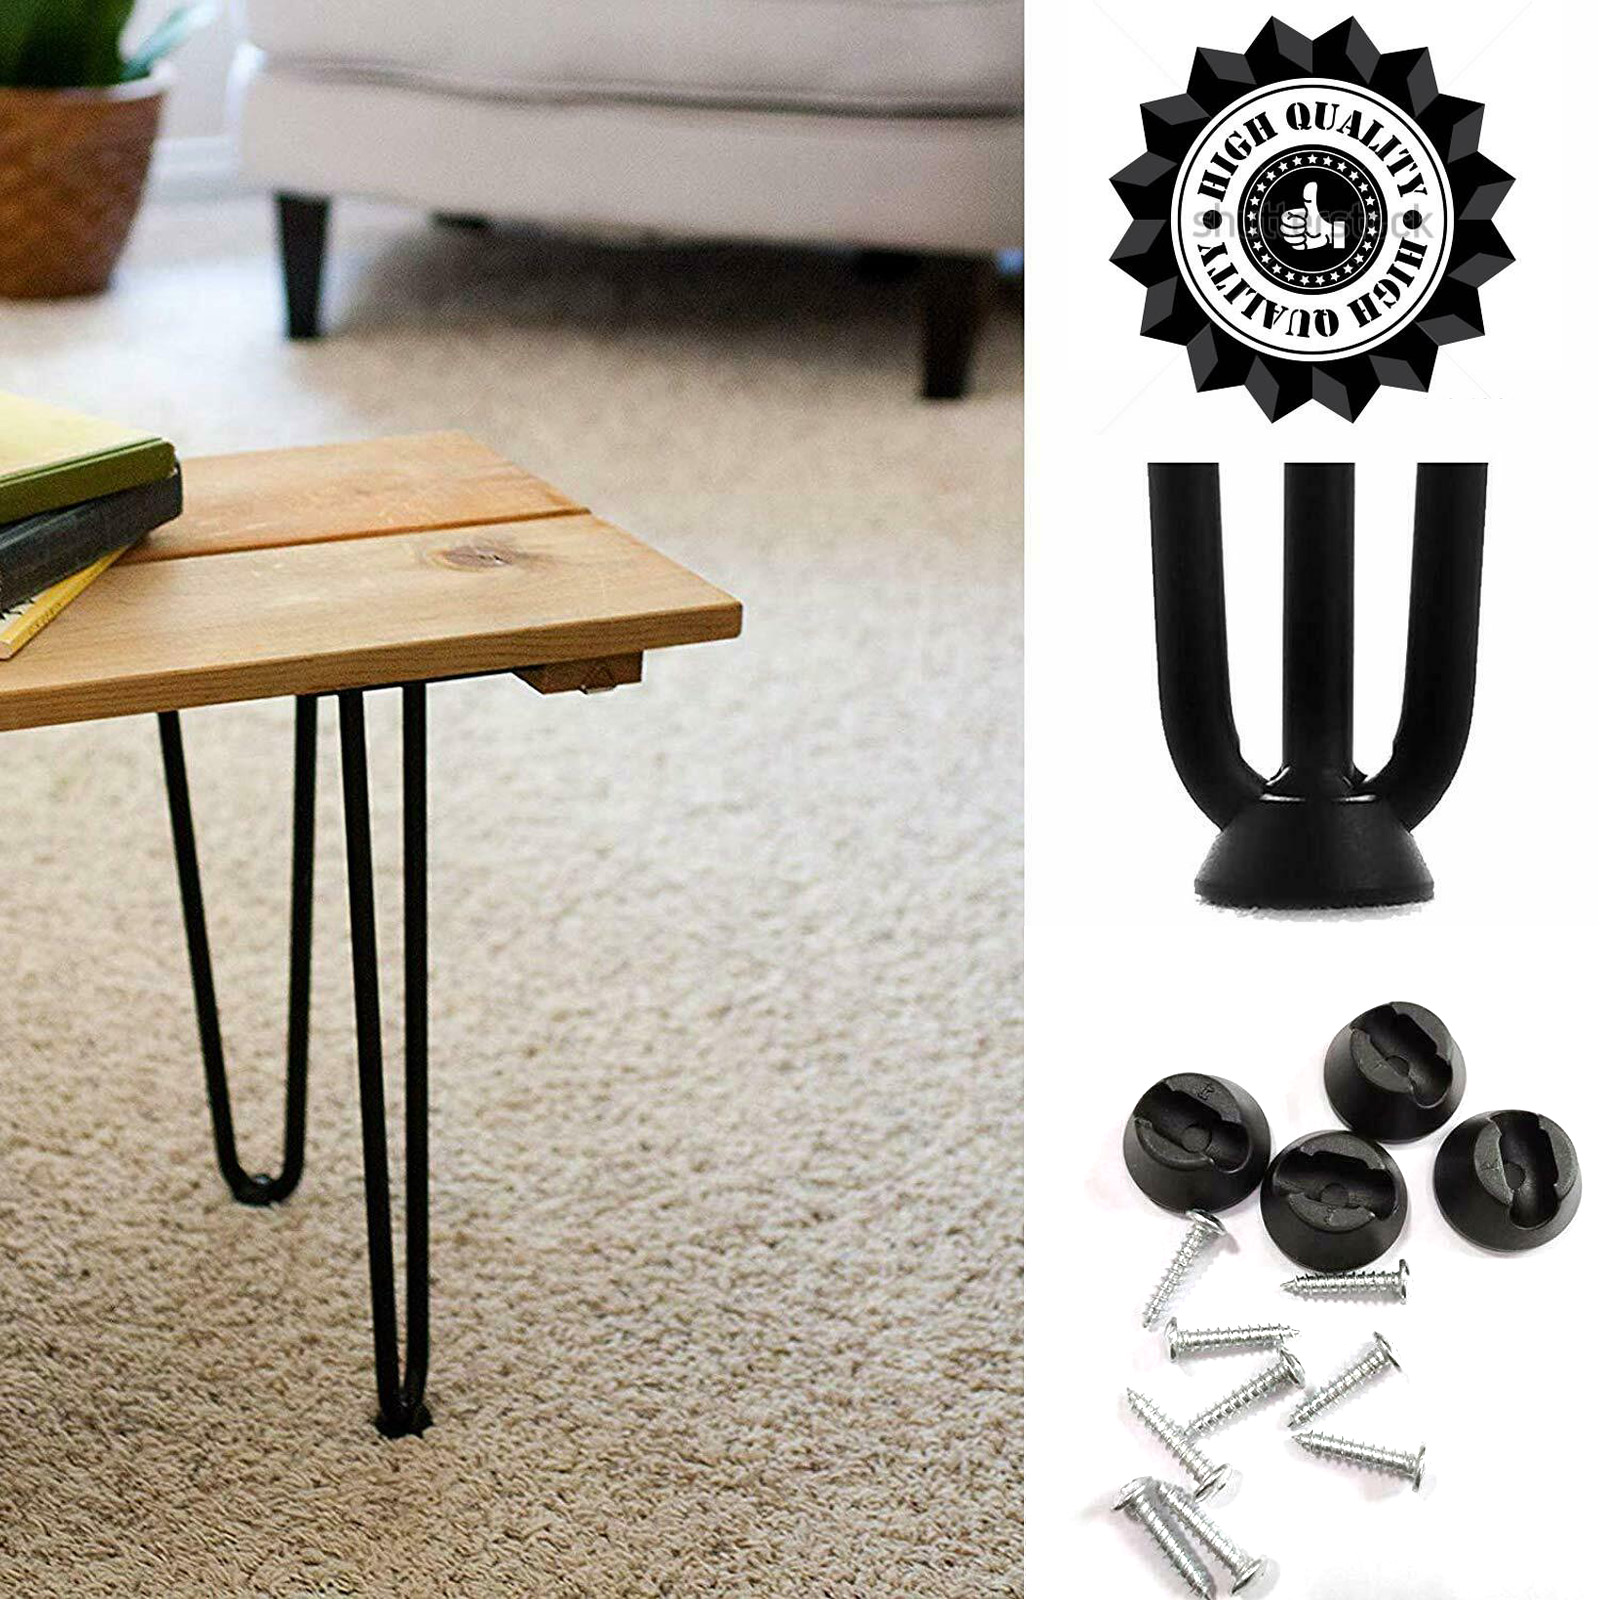 Tremendous Details About Table Hairpin Legs 10Mm Metal Furniture Coffee 4 Diy Table Legs Stainless Steel Interior Design Ideas Tzicisoteloinfo